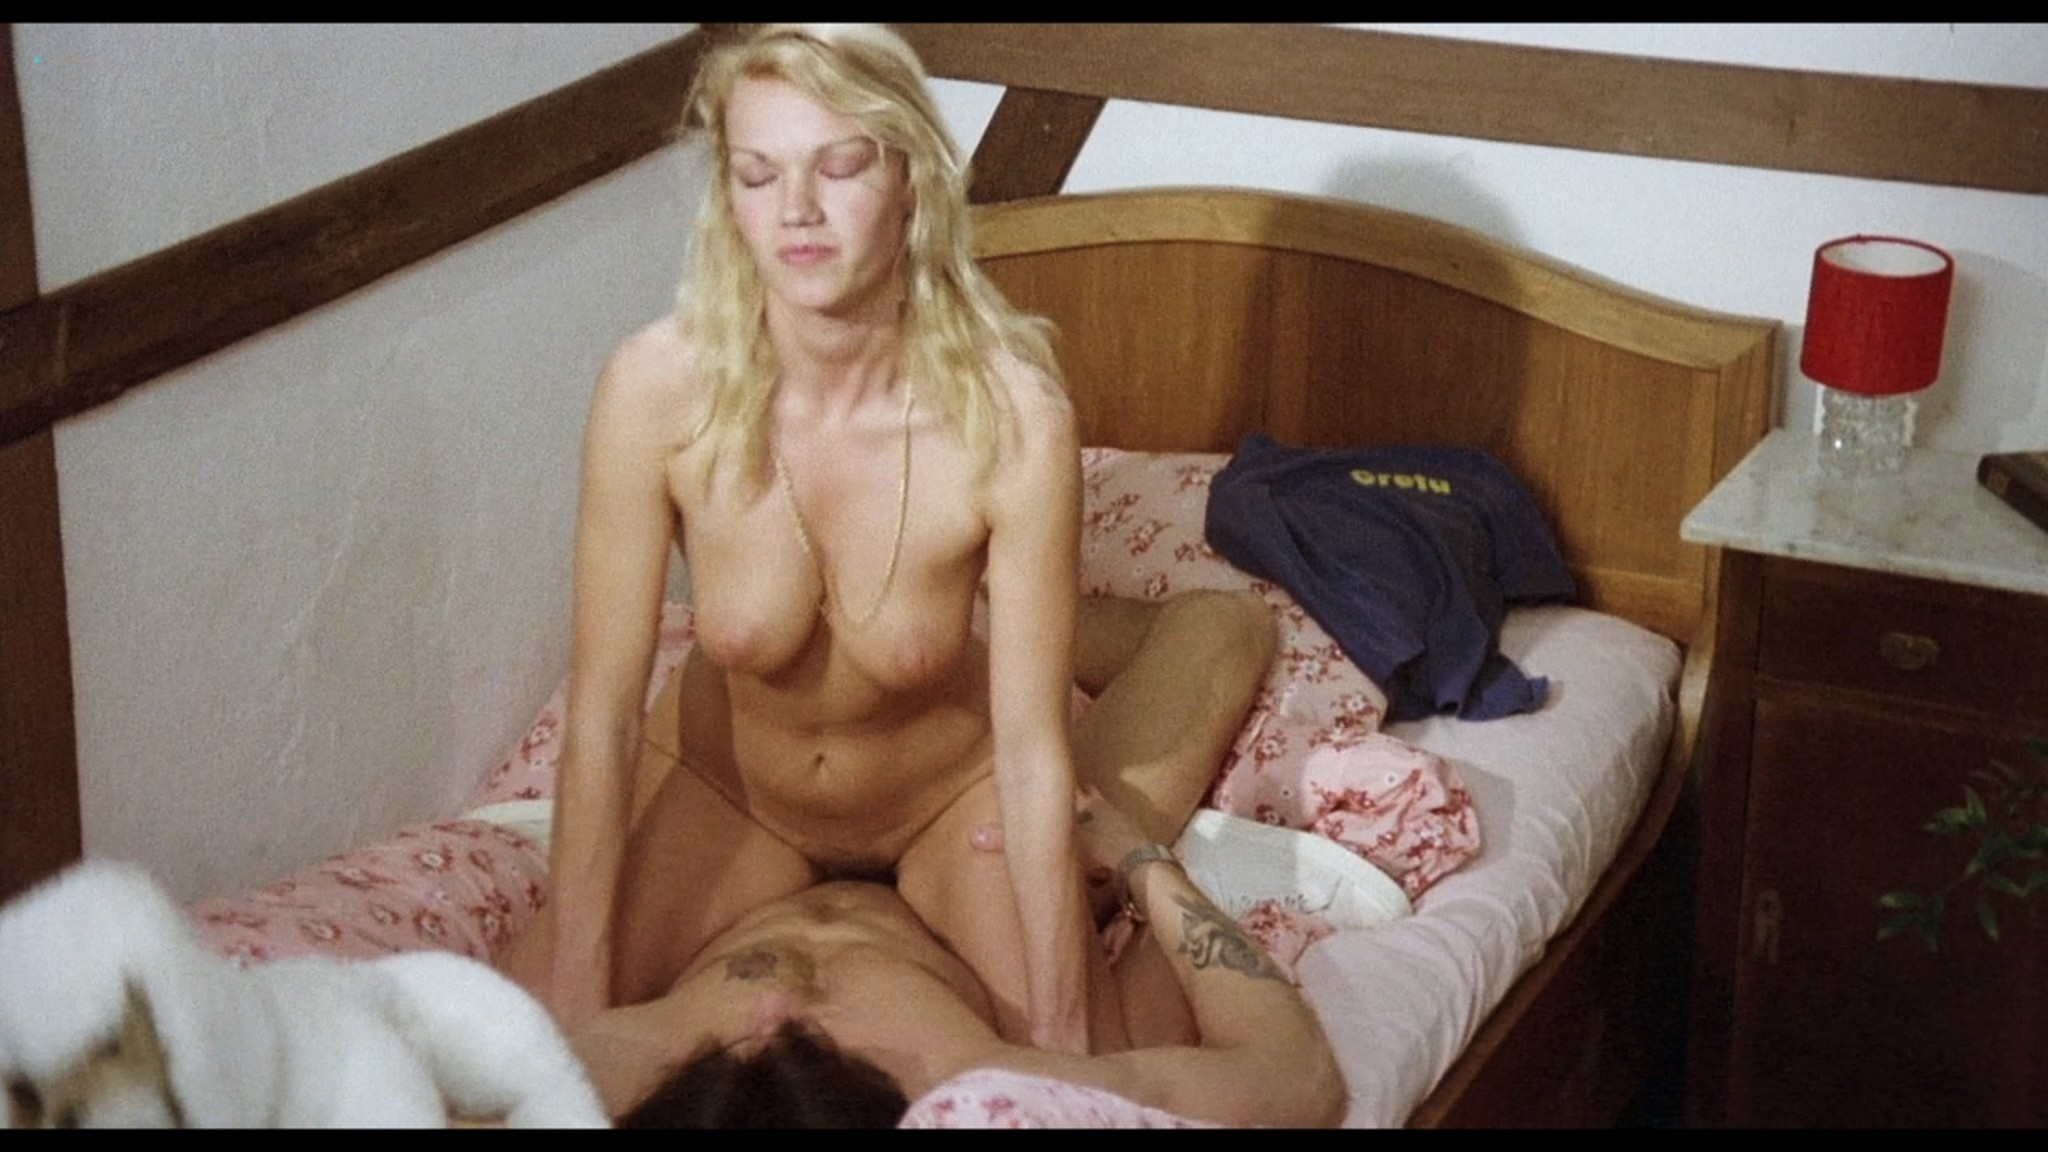 Brigitte Lahaie nude sex Elsa Maroussia and other lots of sex - Swedish Gas Pump Girls (1980) HD 720p BluRay (20)